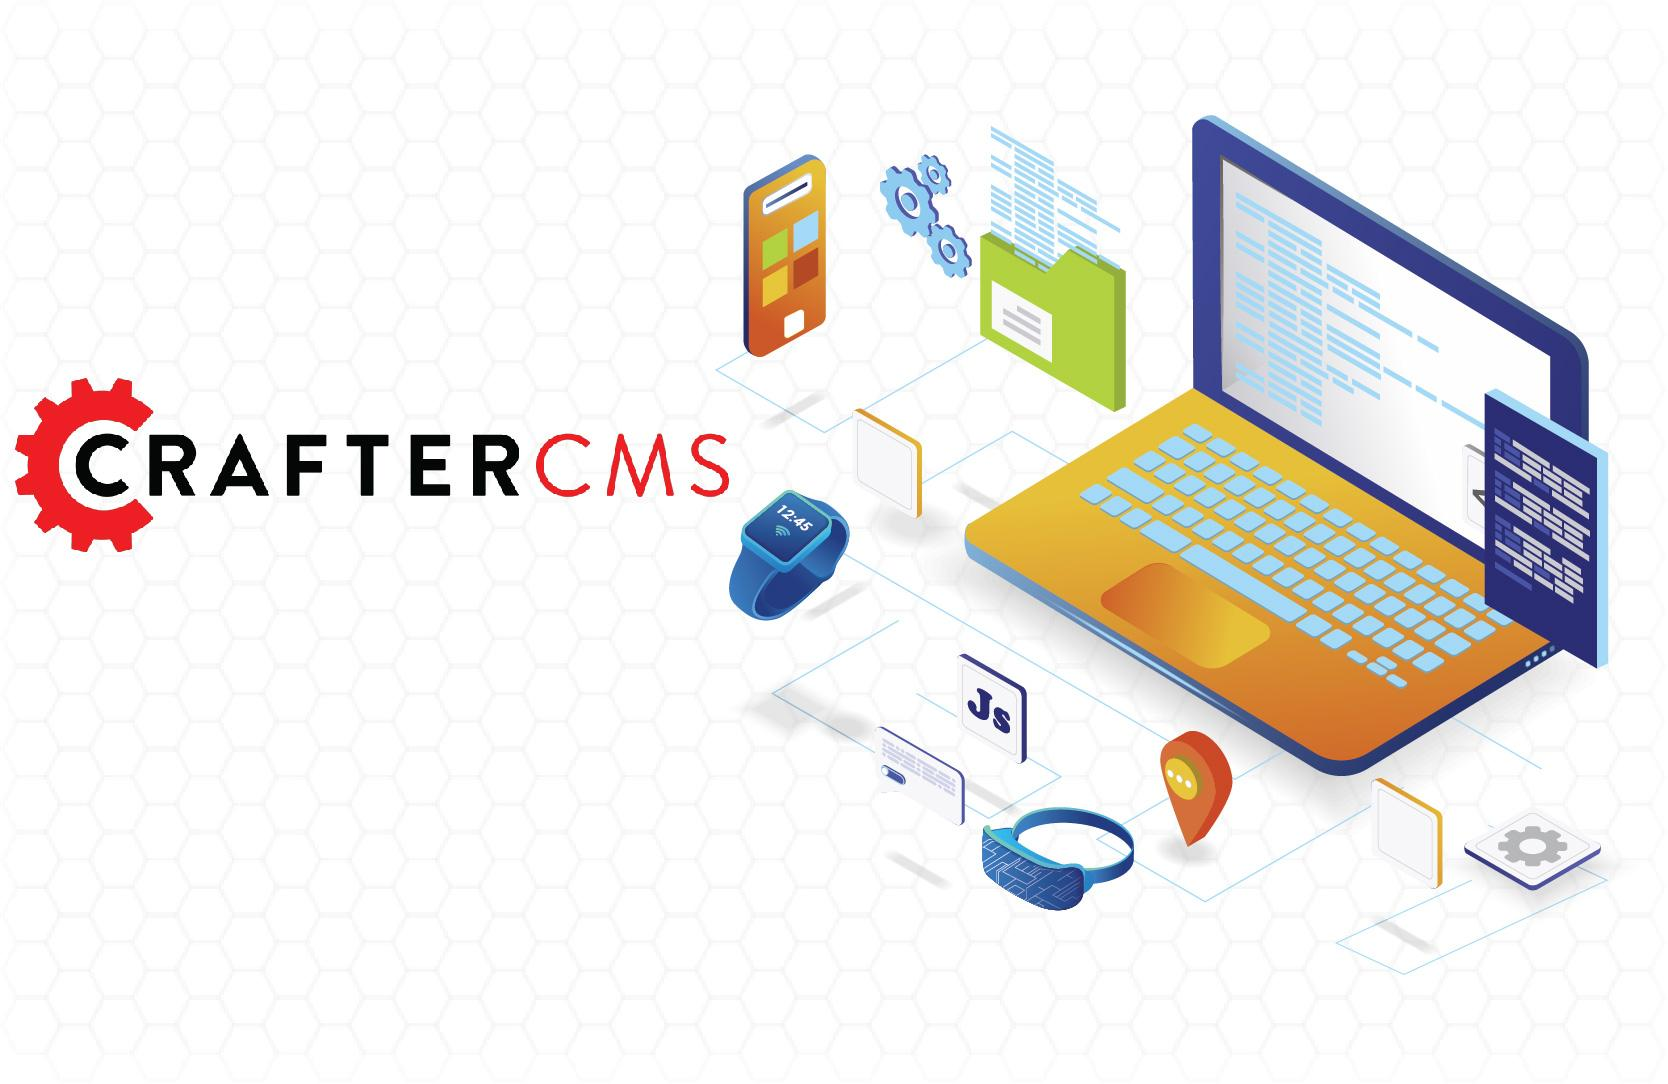 Web CMS Architectures: Coupled, Decoupled, or Headless?